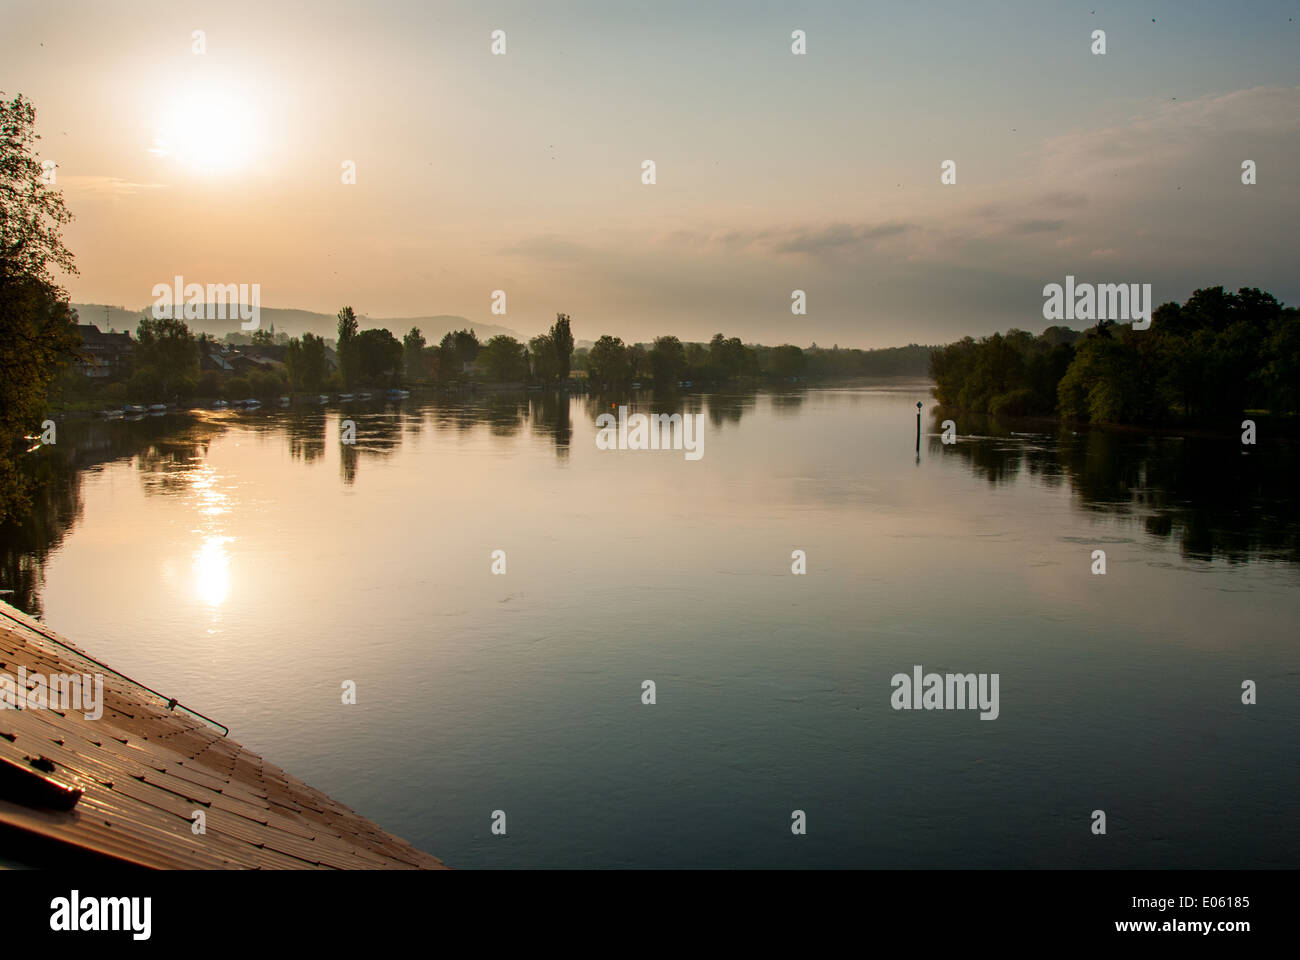 A pictorial view of a Rhine river oxbow at early morning, just a little past dawn - Stock Image